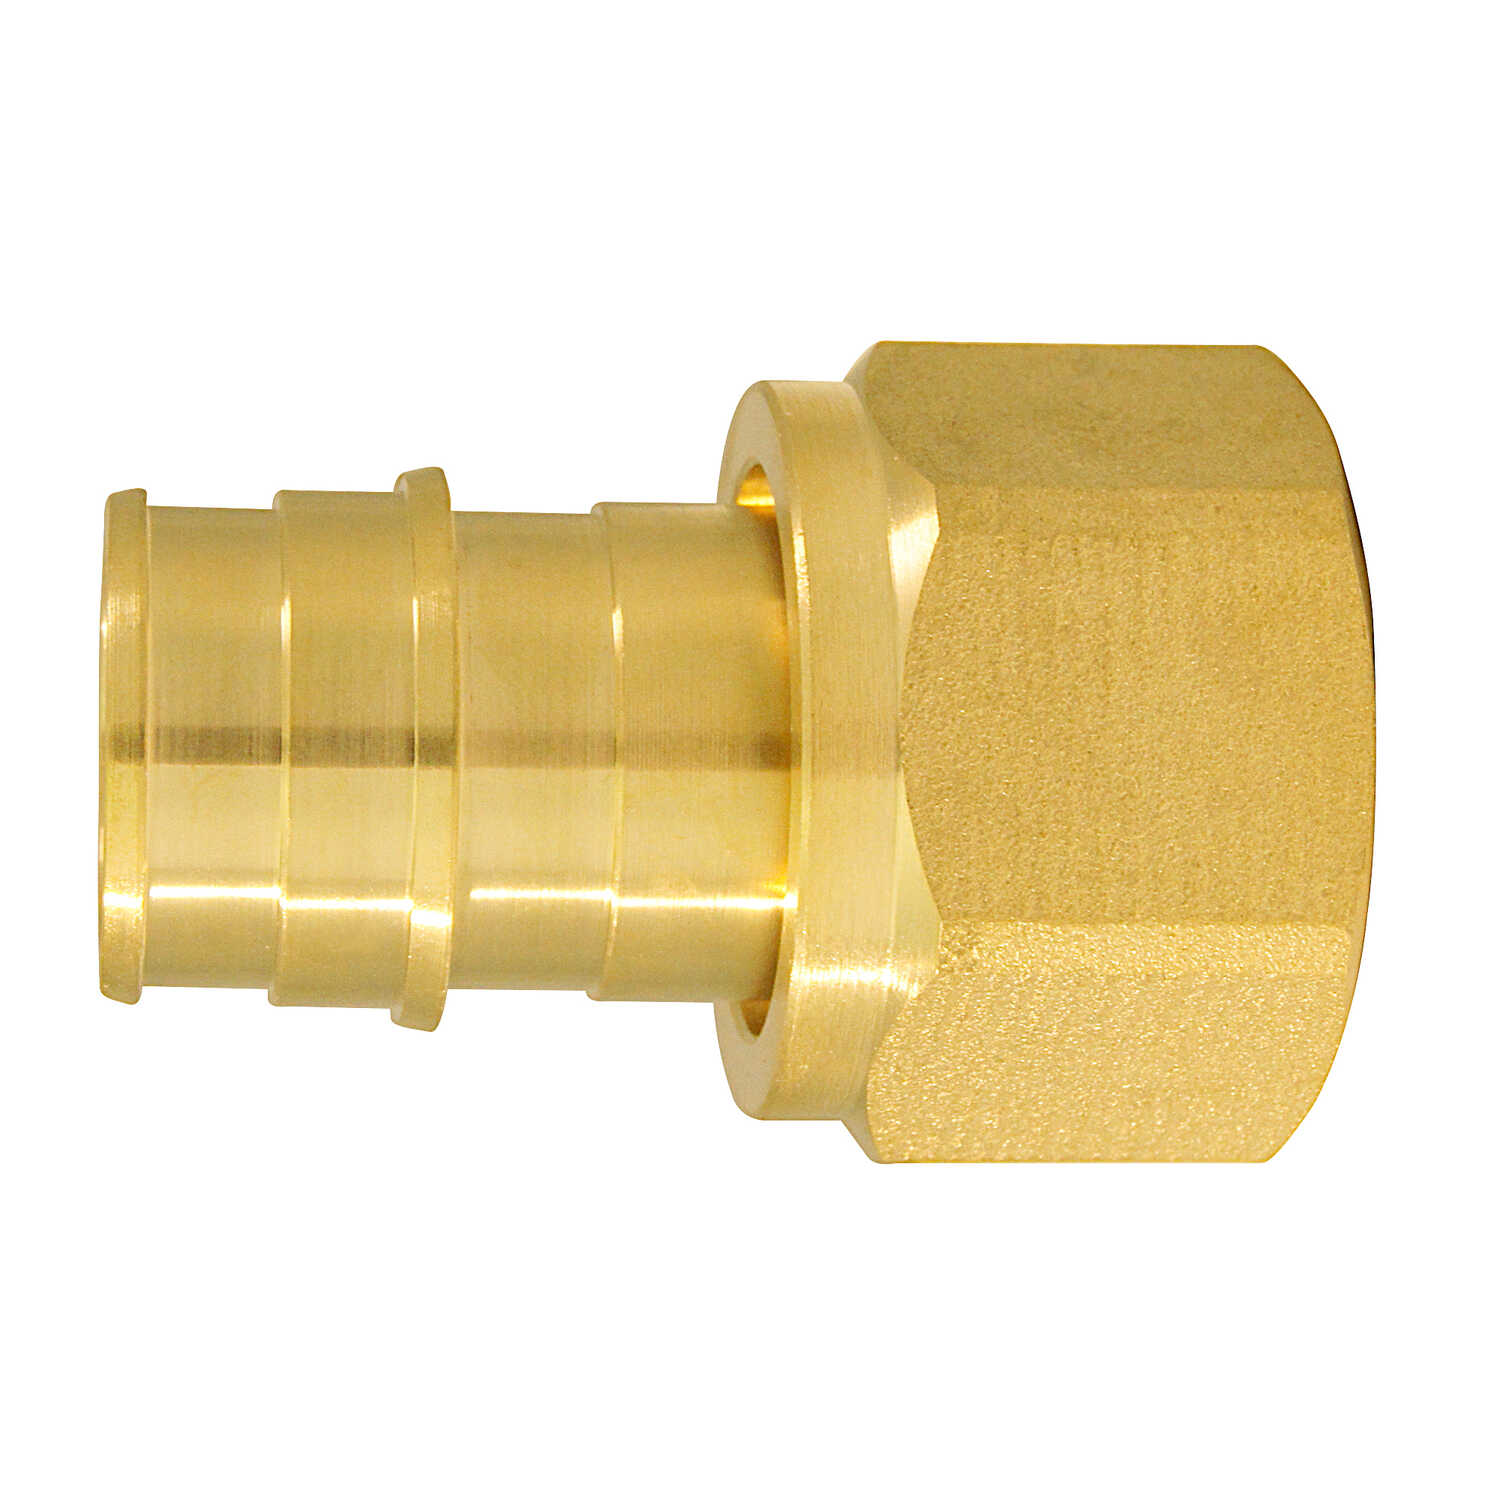 Apollo  Expansion PEX / Pex A  PEX   x 3/4 in. Dia. FPT  3/4 in. 1 pk Female Adapter